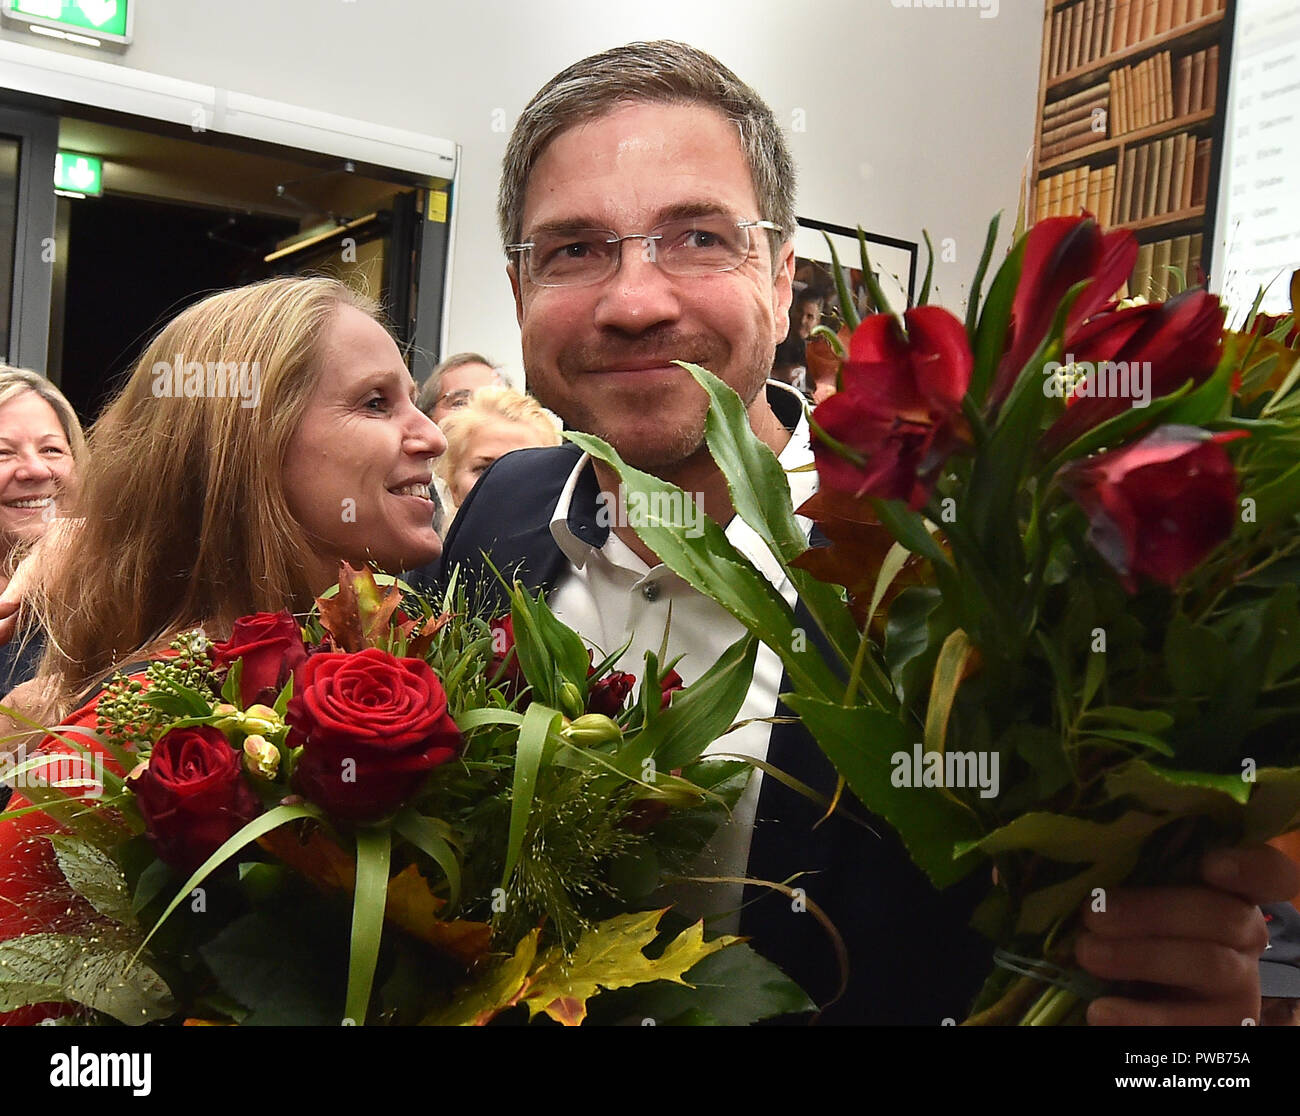 Potsdam, Brandenburg. 14th Oct, 2018. 14 October 2018, Germany, Potsdam: Wife Simone congratulates Mike Schubert (SPD) at the election party. He was elected the new Lord Mayor with 55.3 percent of the votes. Credit: Bernd Settnik/dpa-Zen tralbild/dpa/Alamy Live News - Stock Image